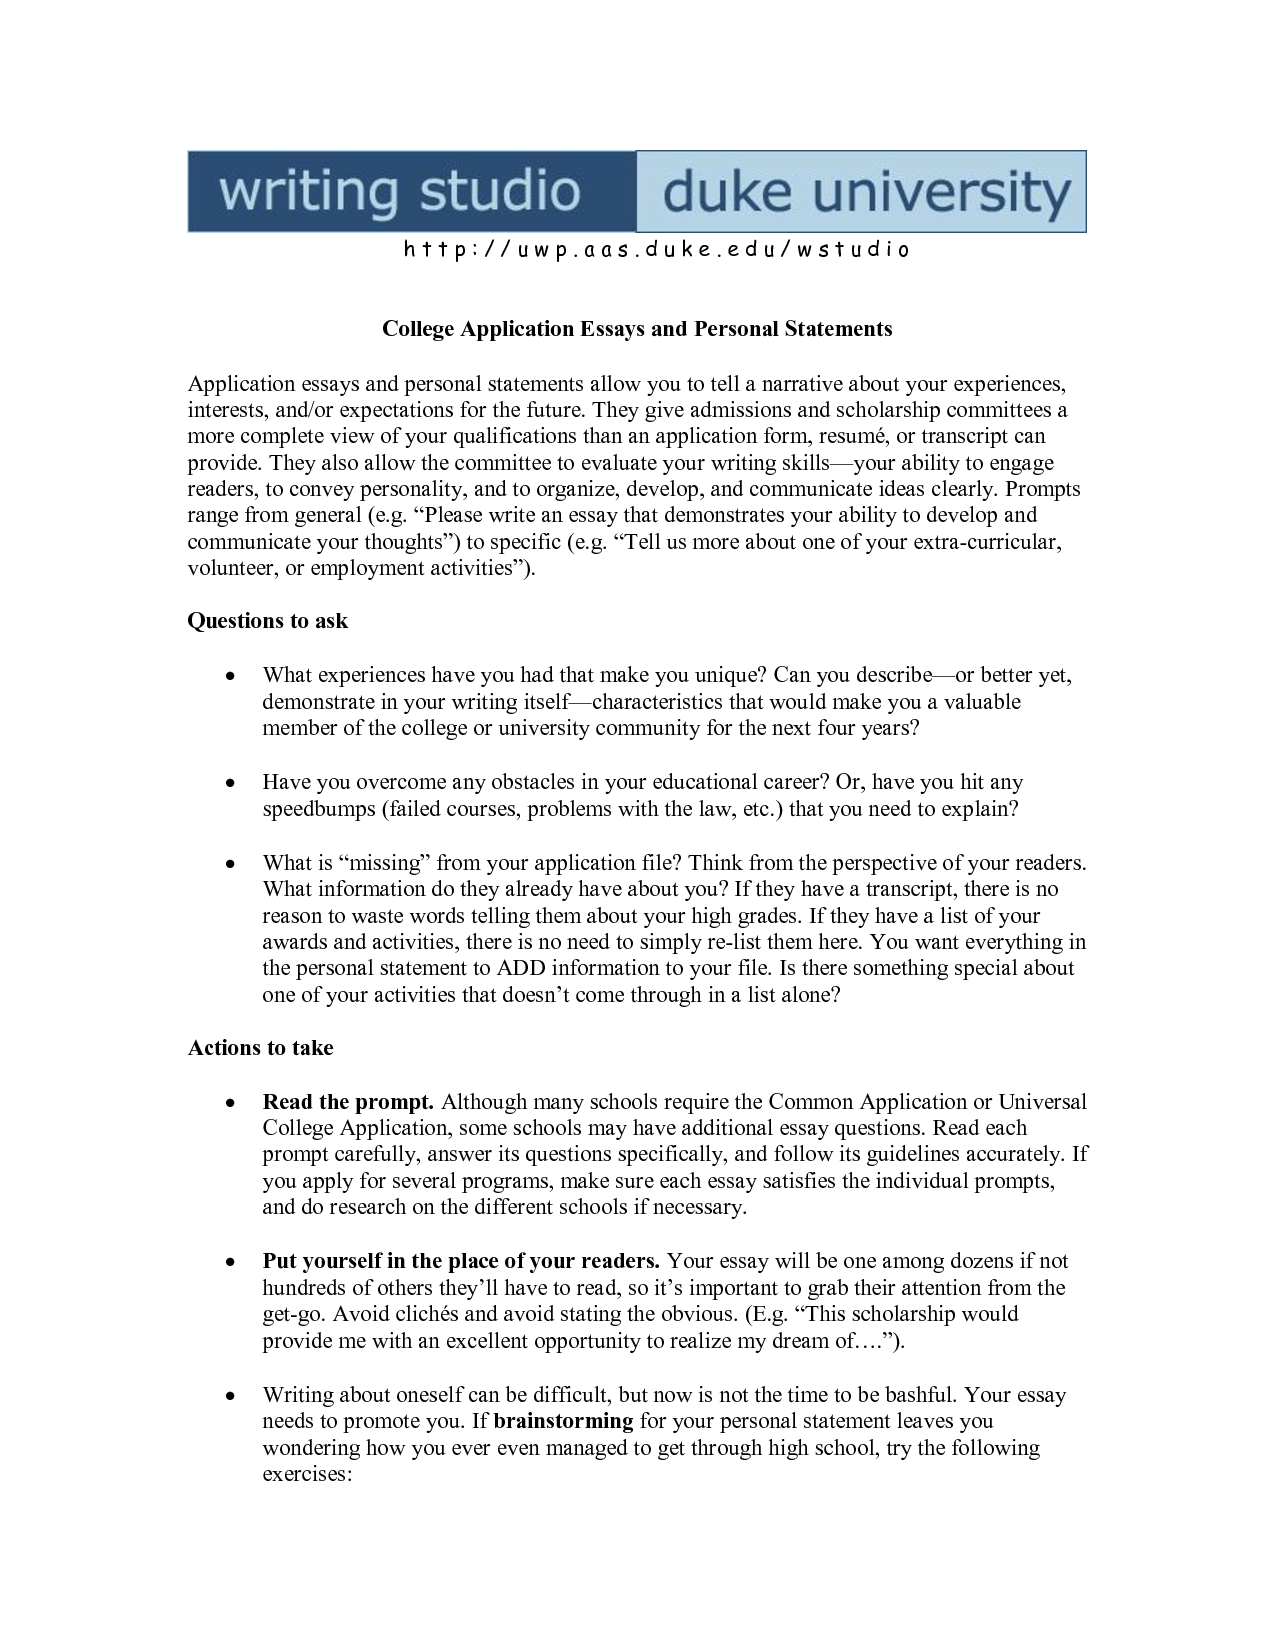 015 Example Of Personal Essay For College Application Narrative About Examples The Format Template Entrance Sample Topics Stupendous Writing Prompts Ks2 Structure Outline Scholarships Full